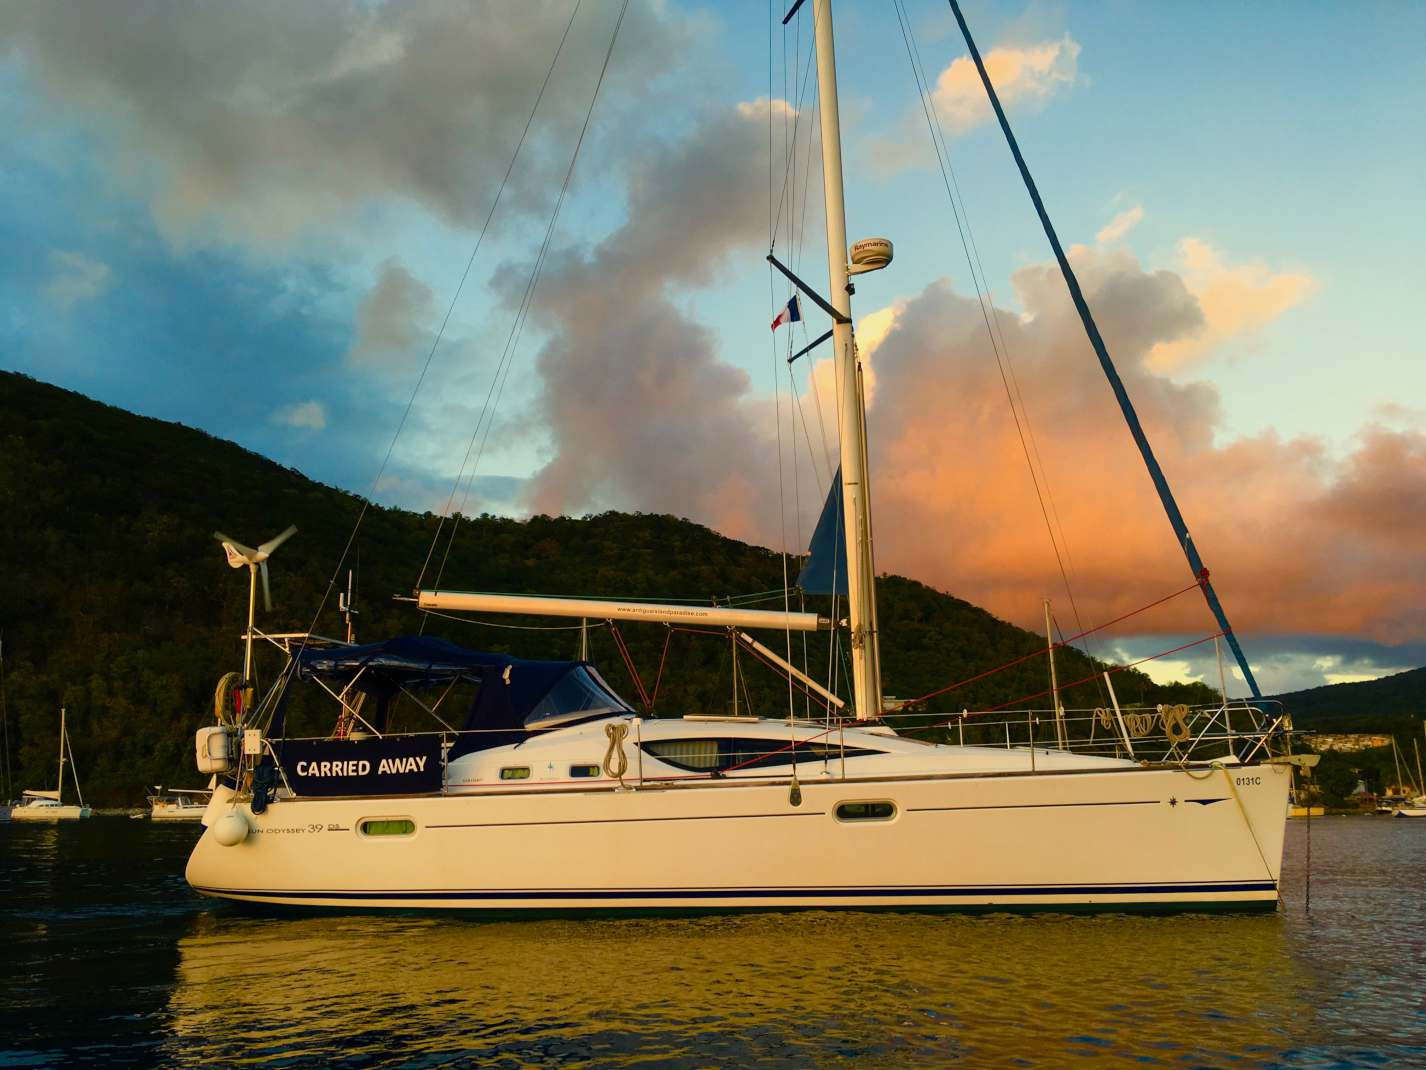 Sunset, our yacht